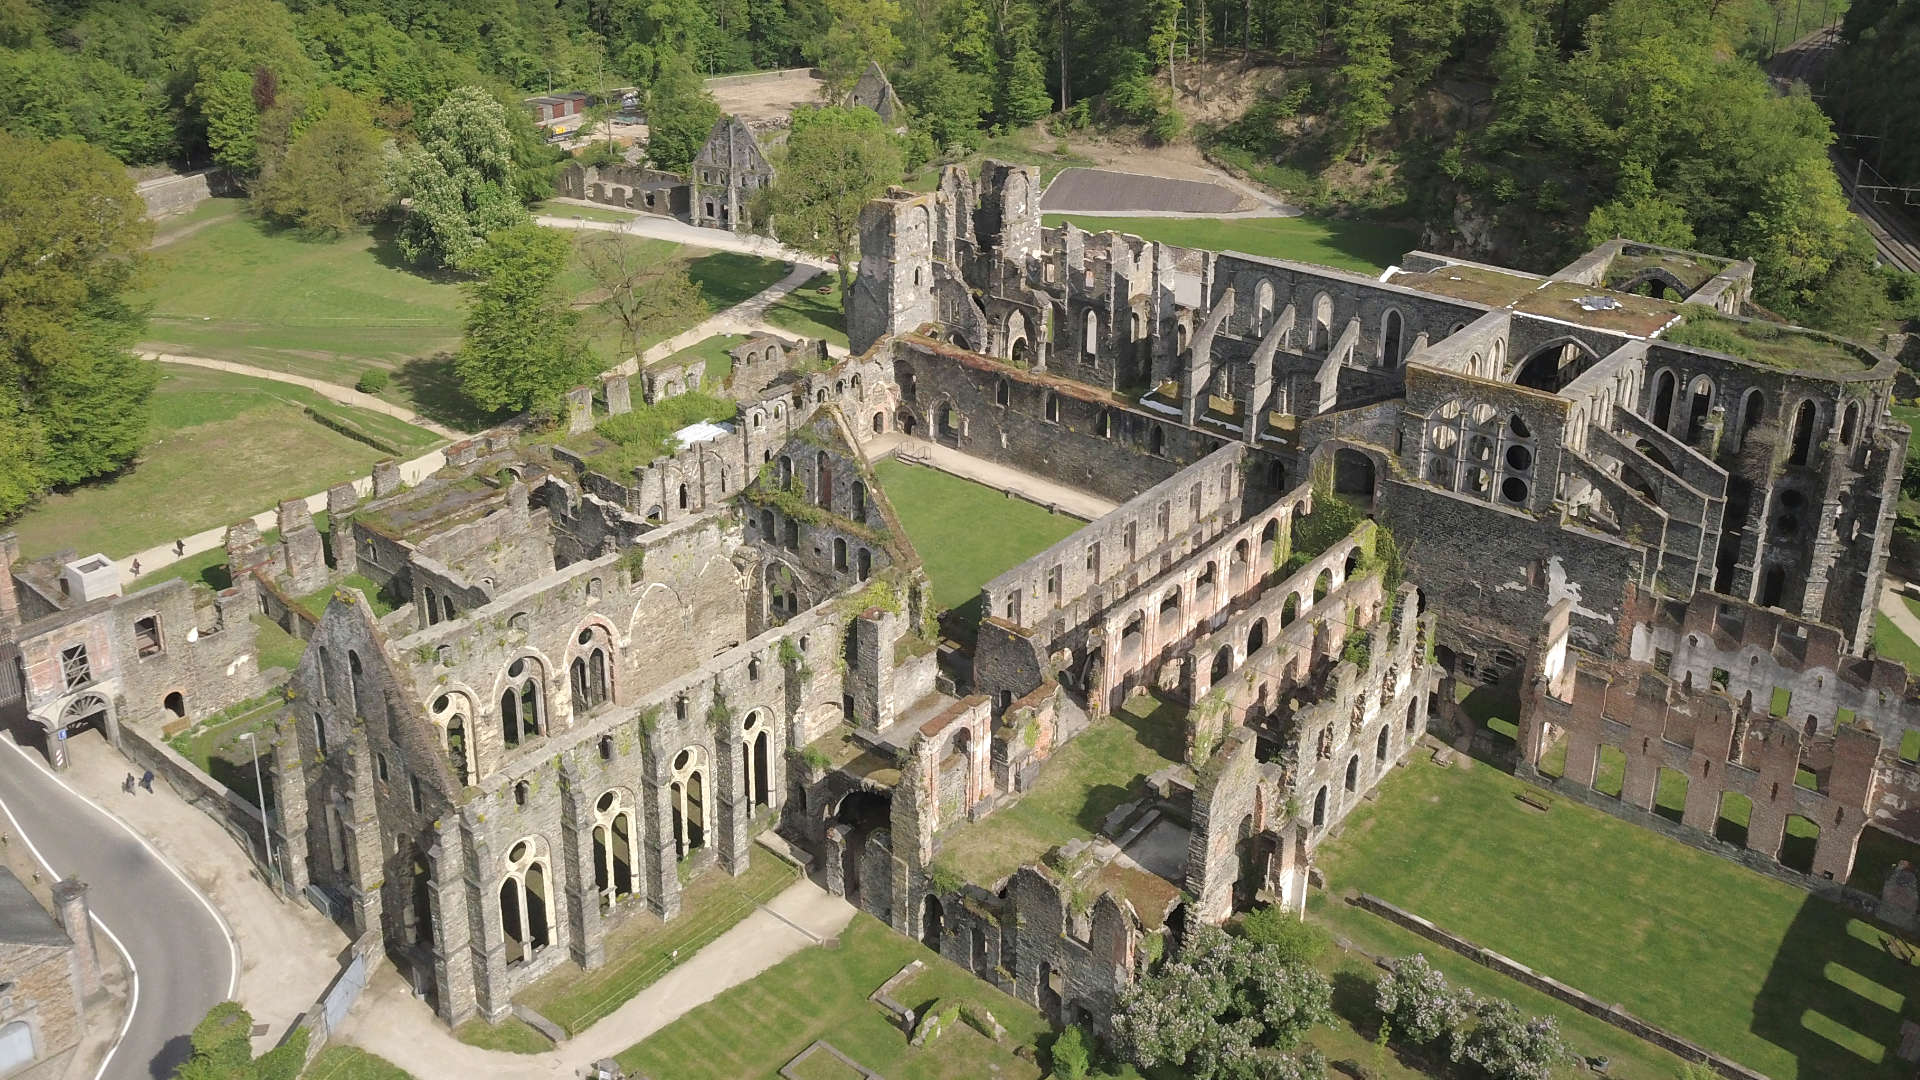 Villers Abbey - View from the sky